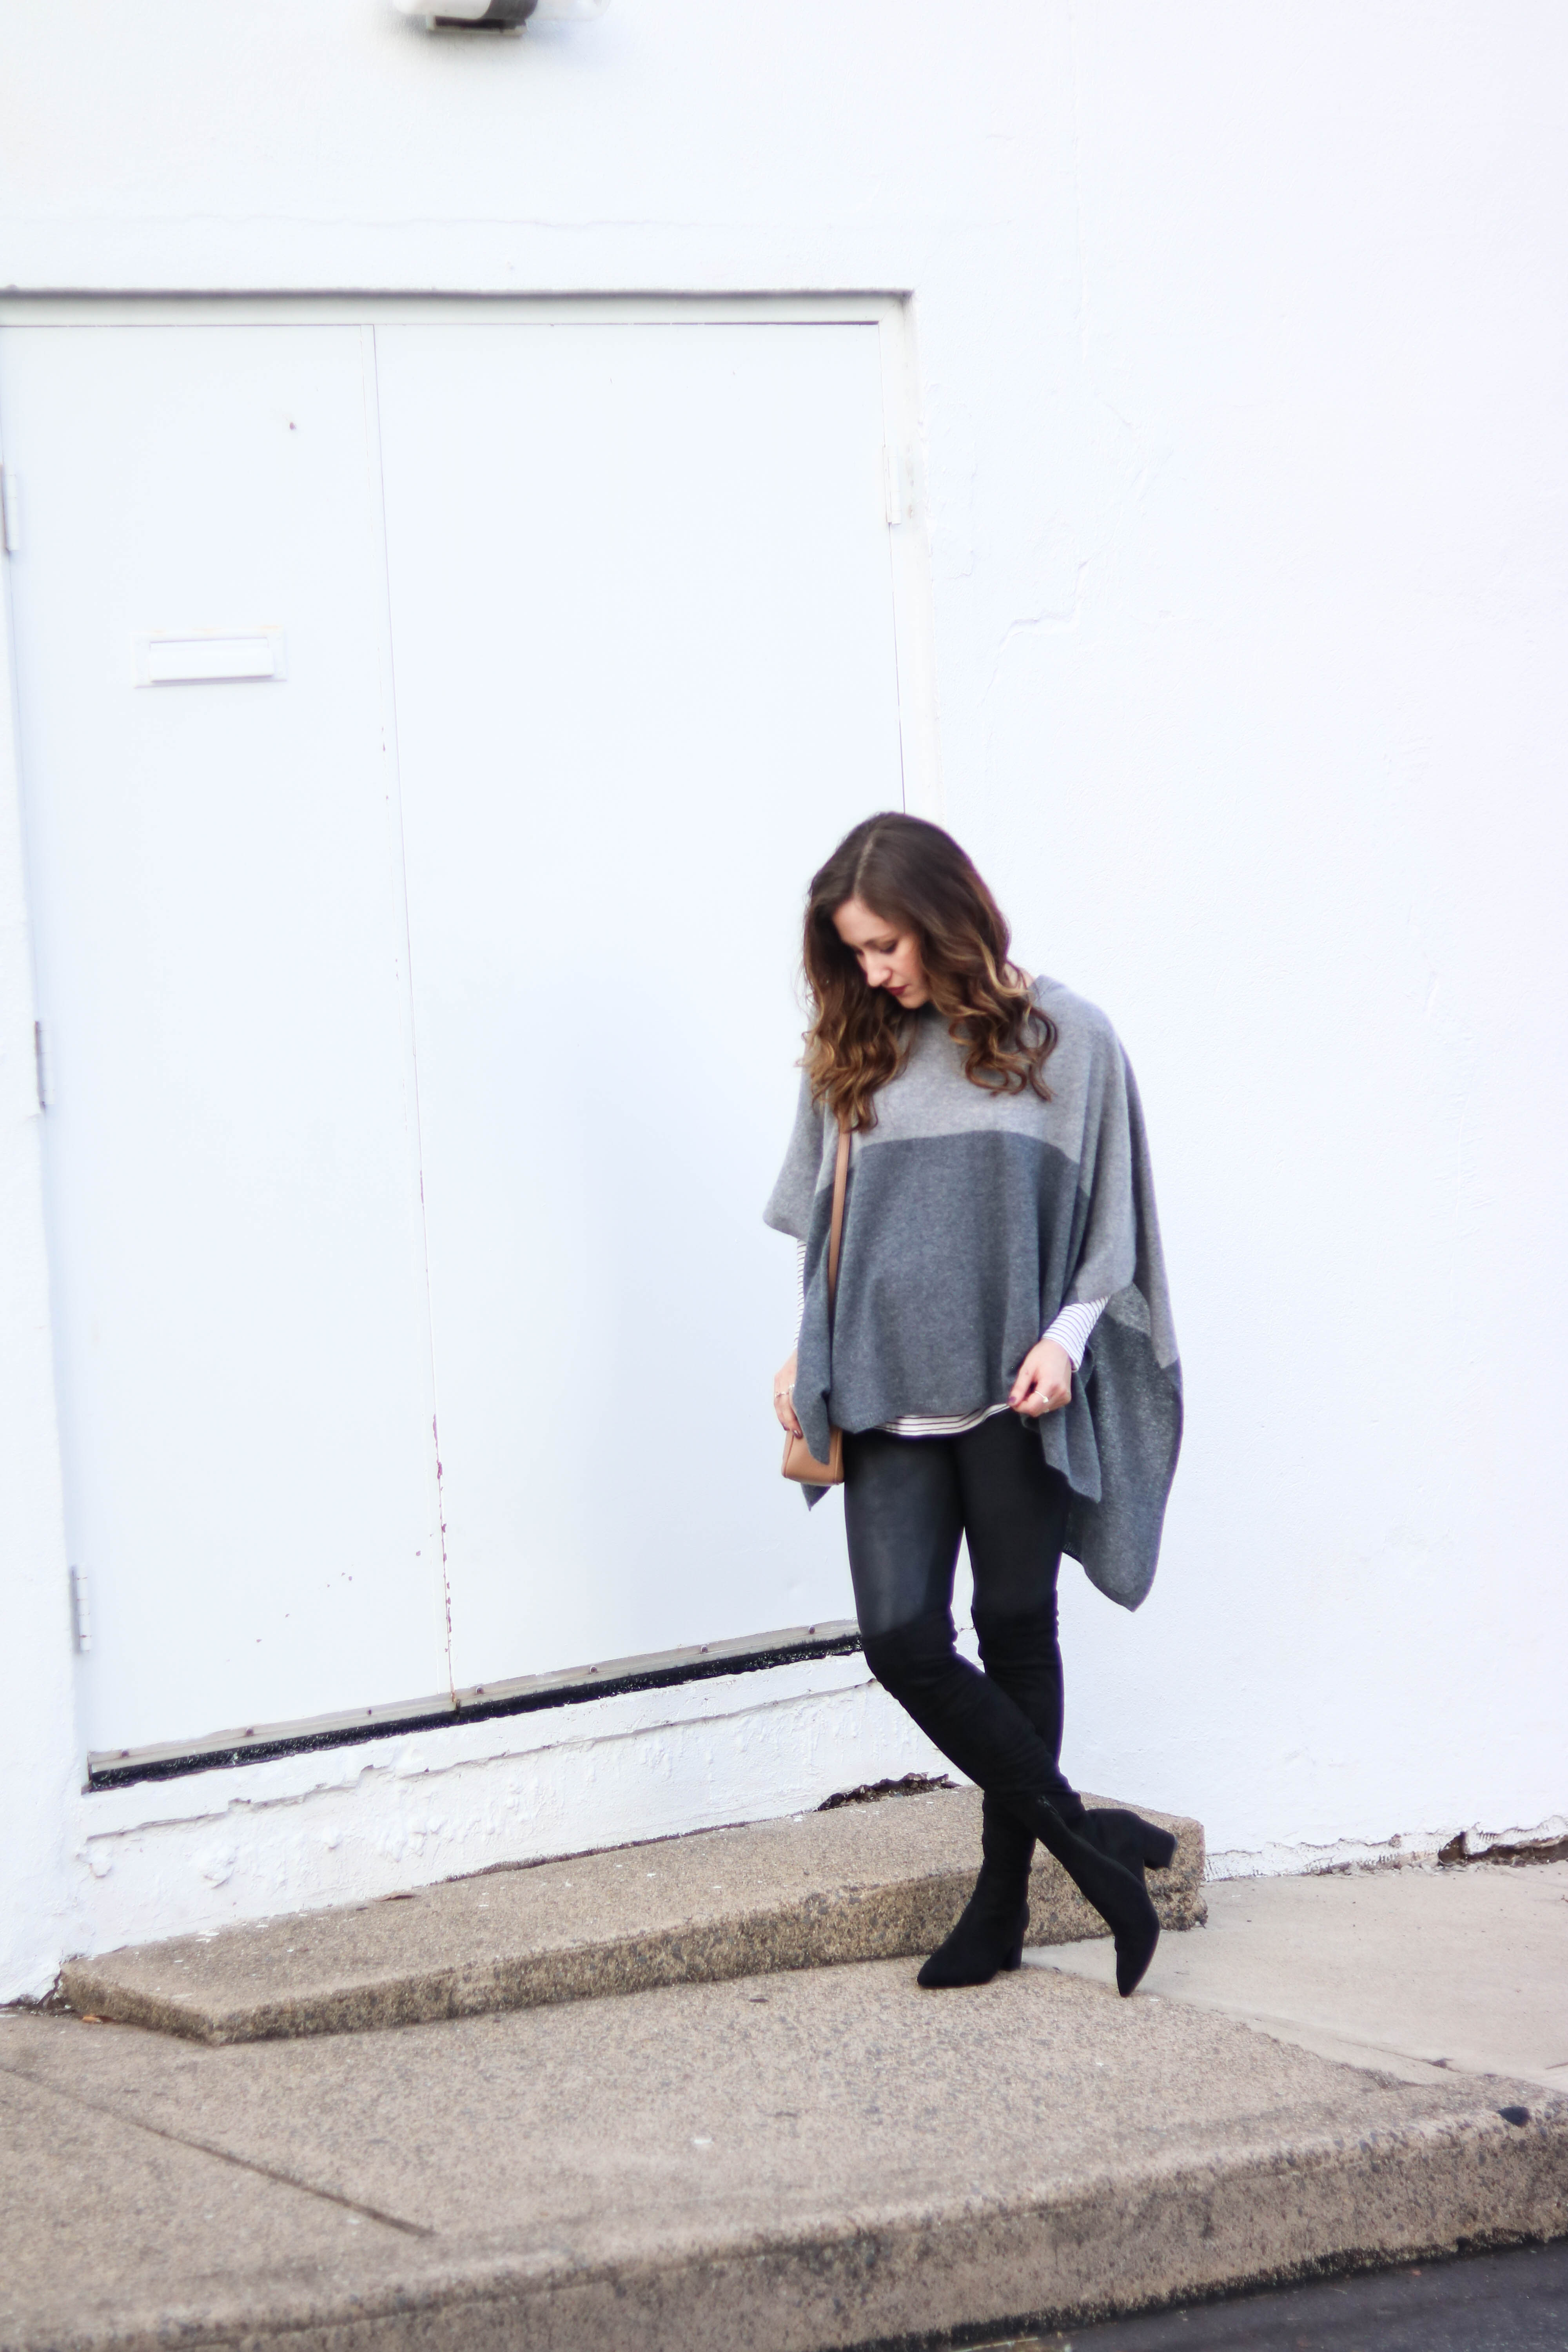 Leather Leggings Lookbook: 6 Ways to Style Leather Leggings, on Coming Up Roses